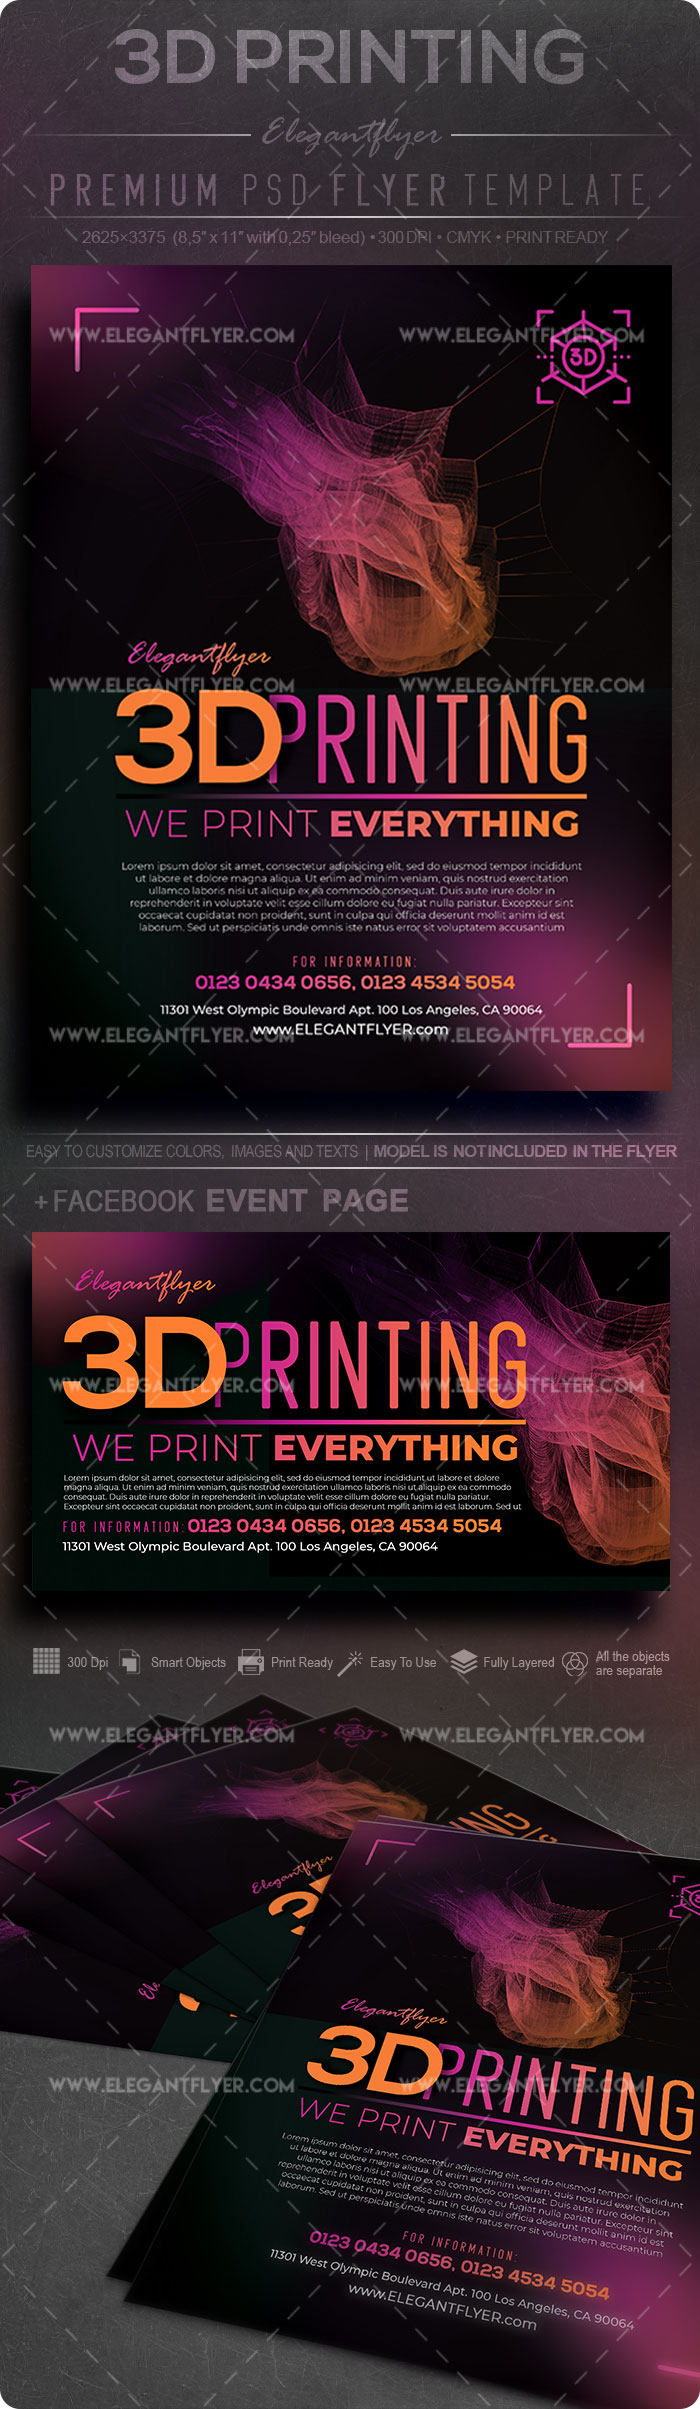 3D Printing – Flyer PSD Template